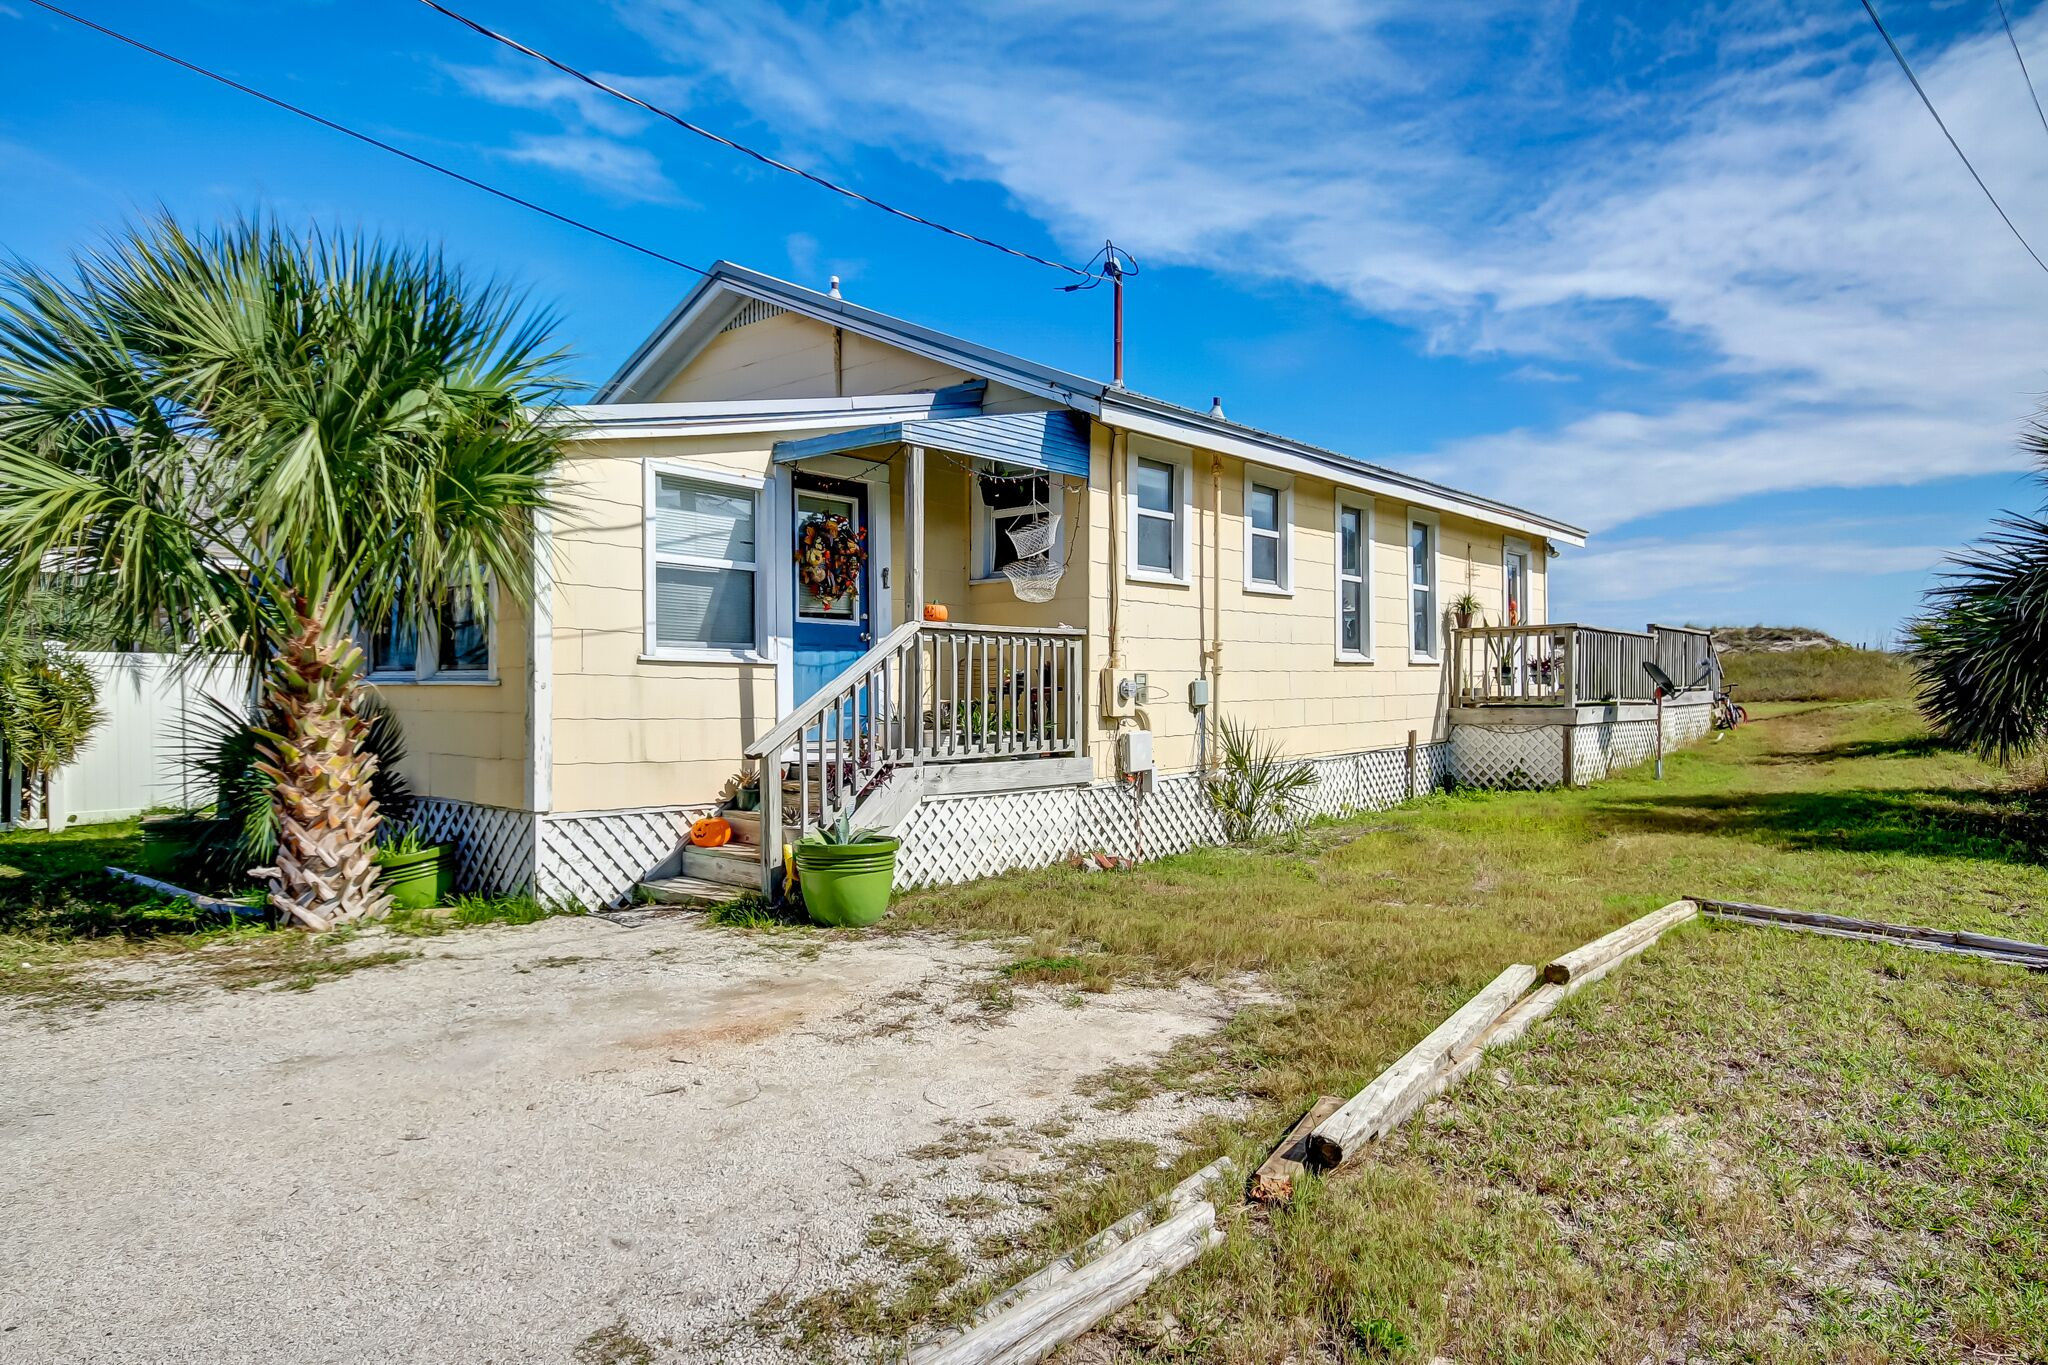 532 N Fletcher Ave, Fernandina Beach, Florida 32034